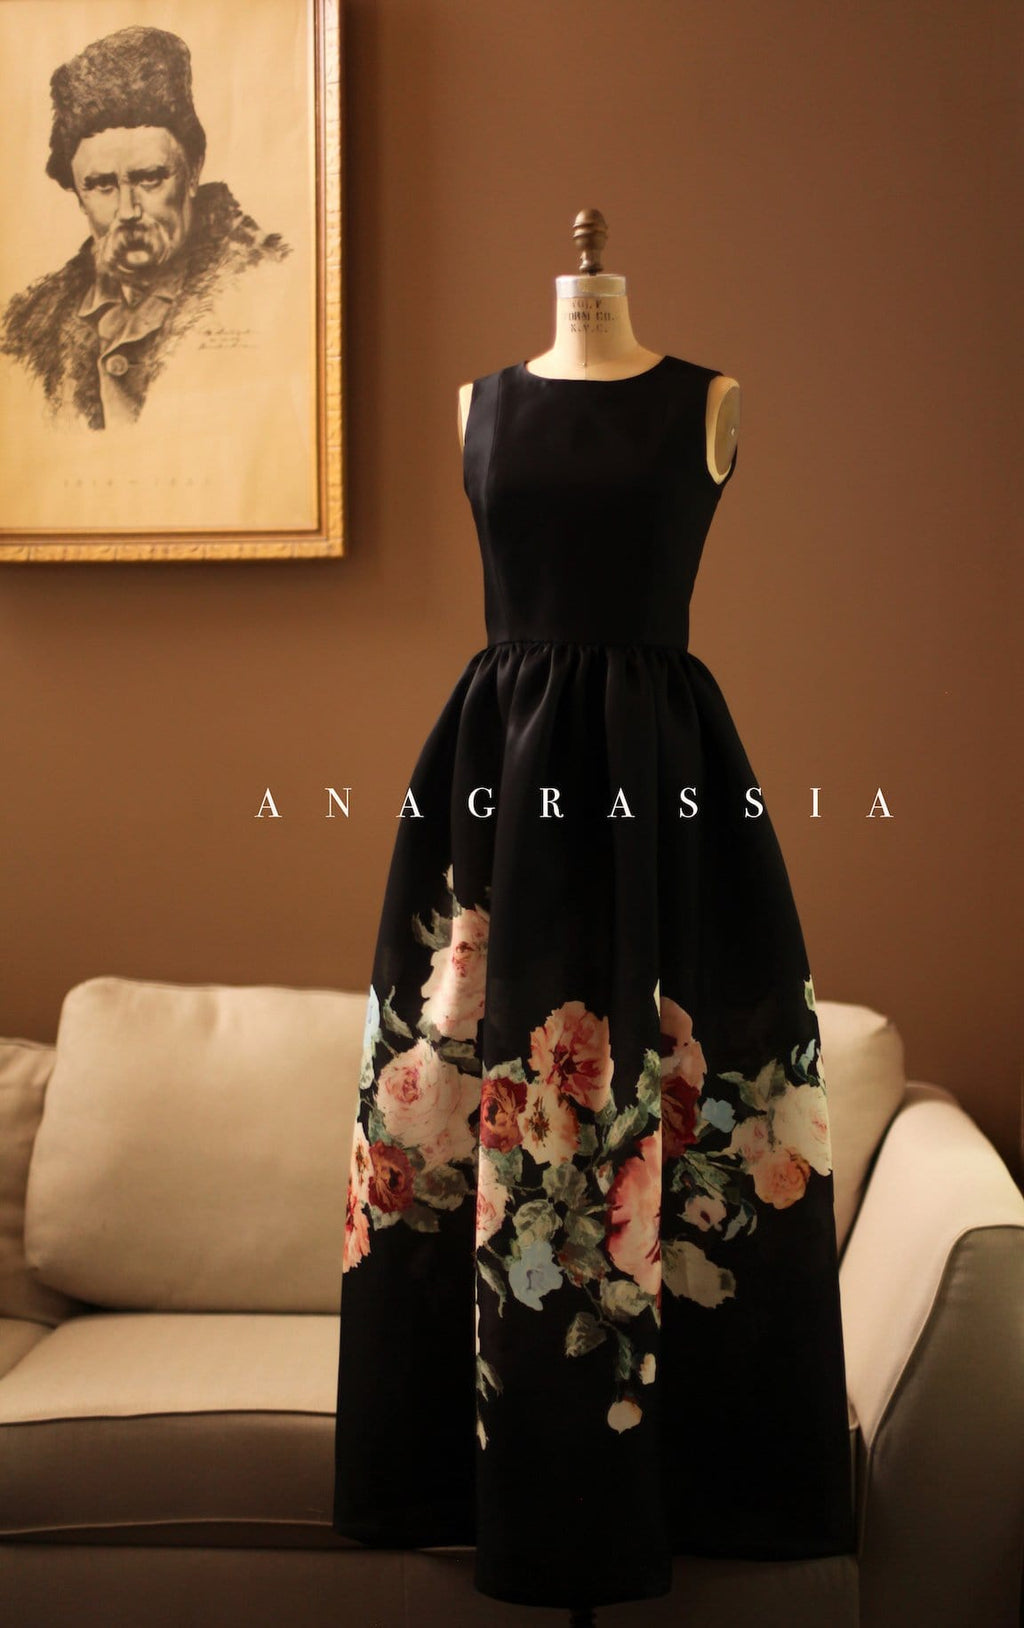 Black Floral Silk Gazar Ball Gown Dress Mother of the Bride Wedding Cristobal Balenciaga Inspired